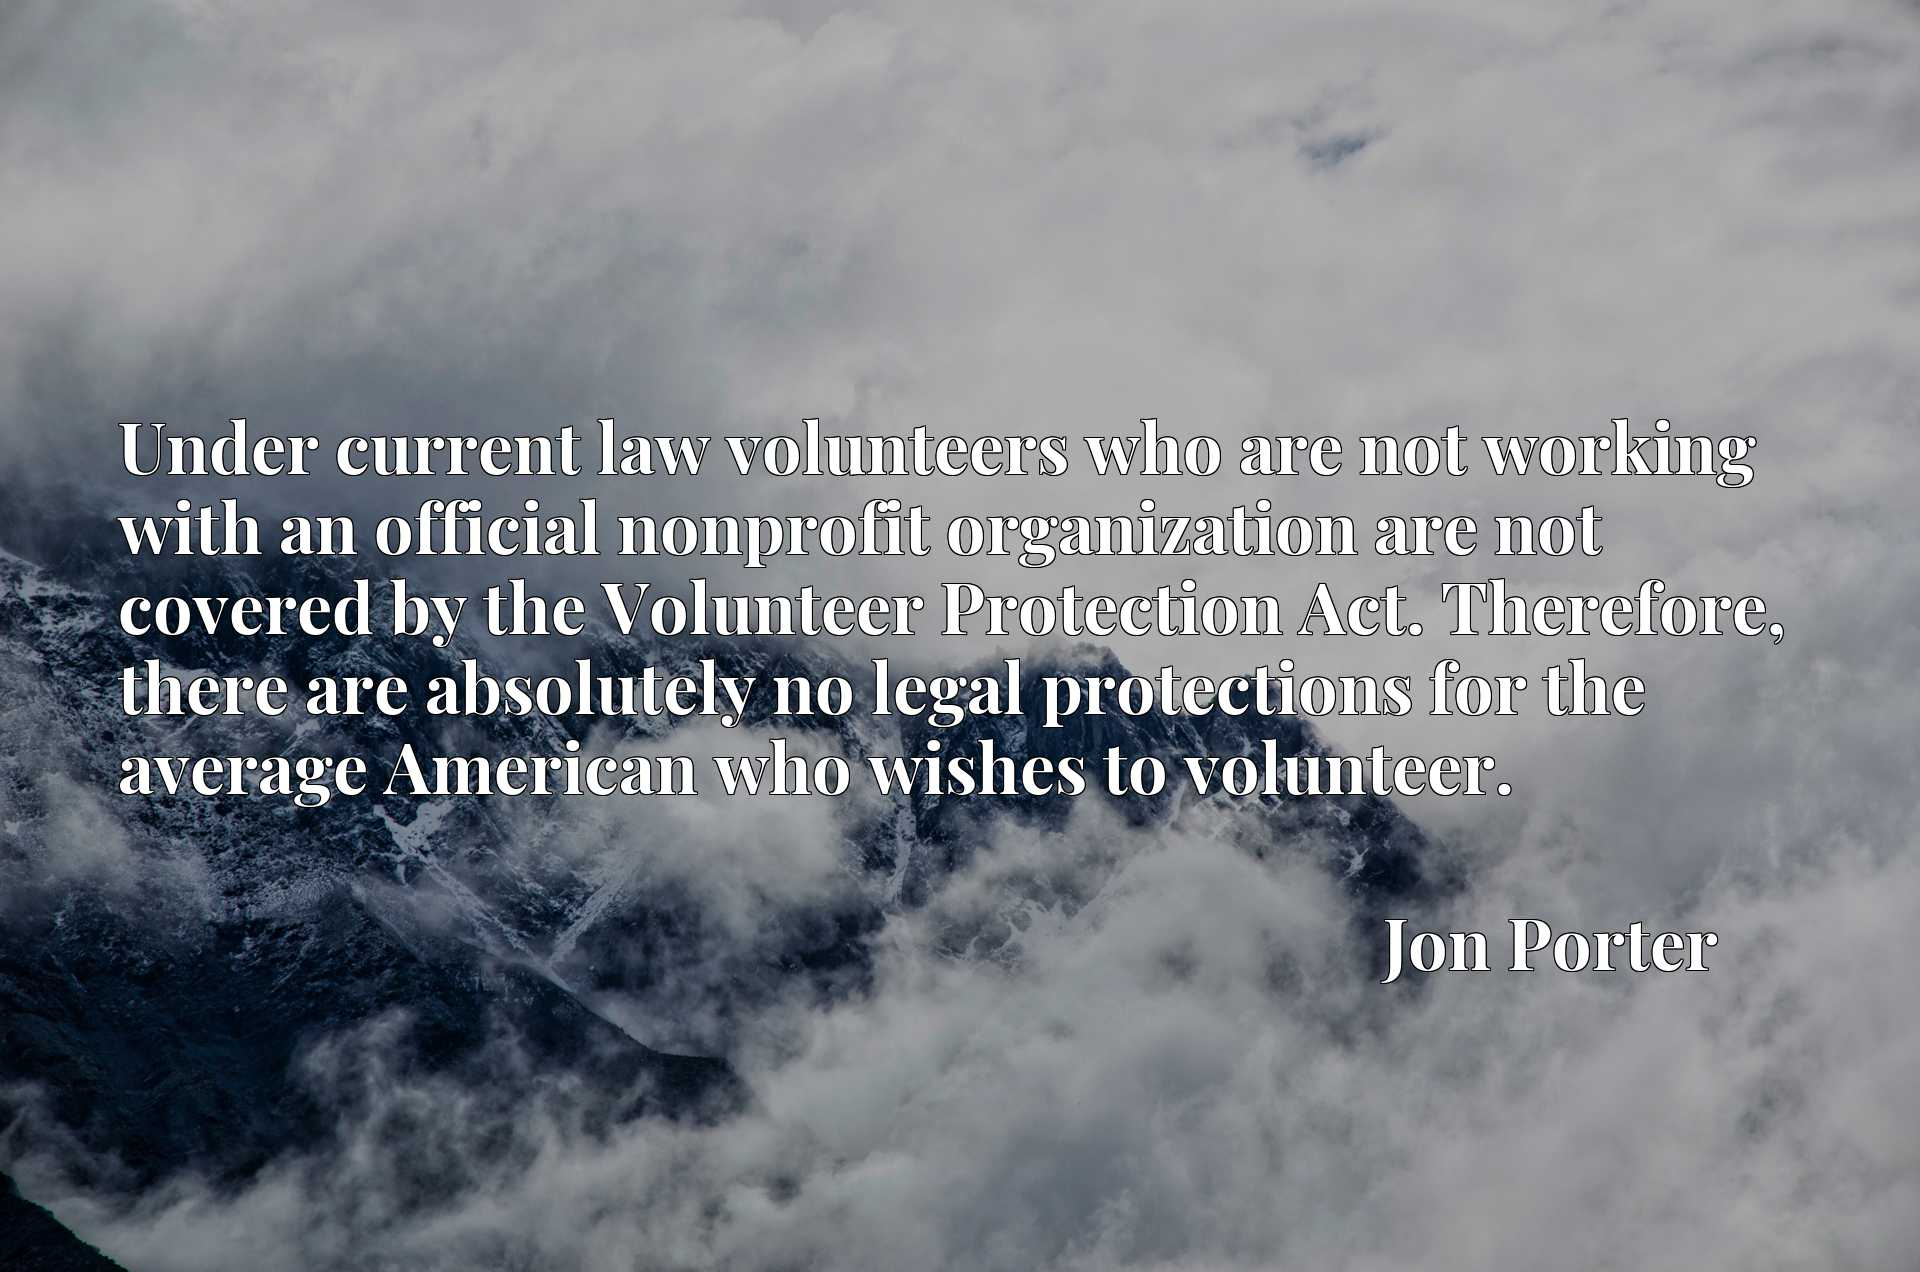 Quote Picture :Under current law volunteers who are not working with an official nonprofit organization are not covered by the Volunteer Protection Act. Therefore, there are absolutely no legal protections for the average American who wishes to volunteer.